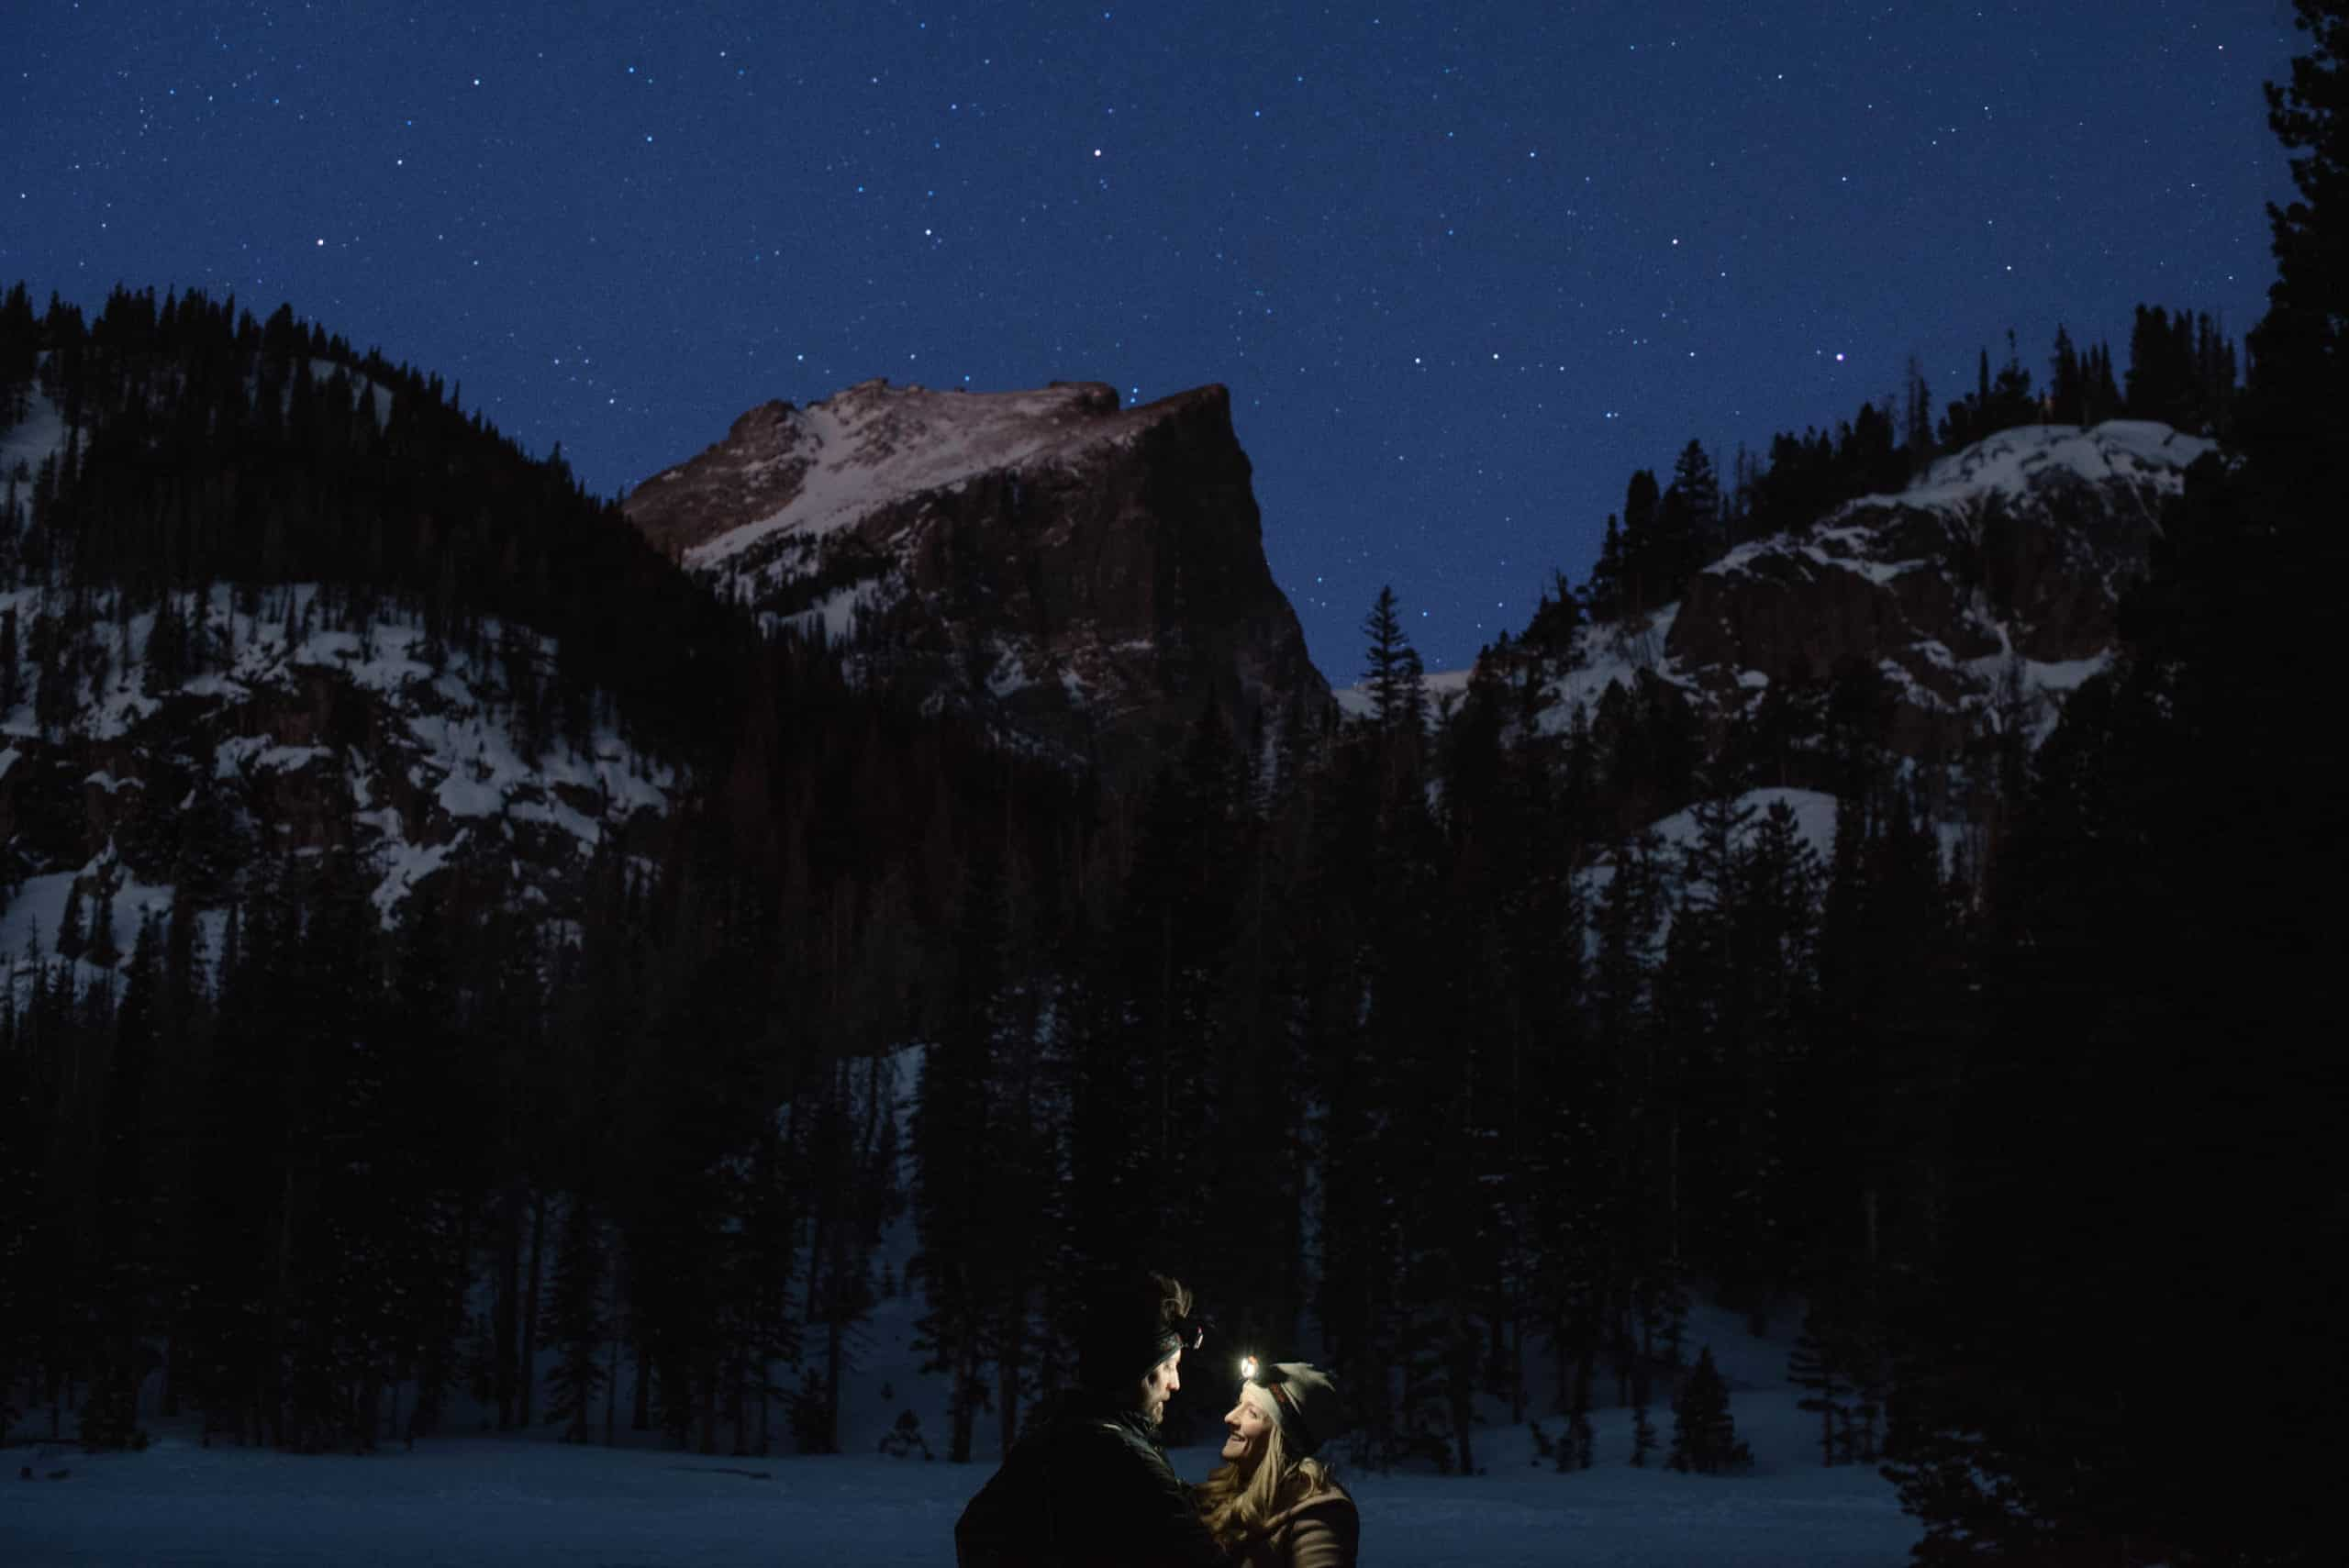 couple in headlamps near a mountain